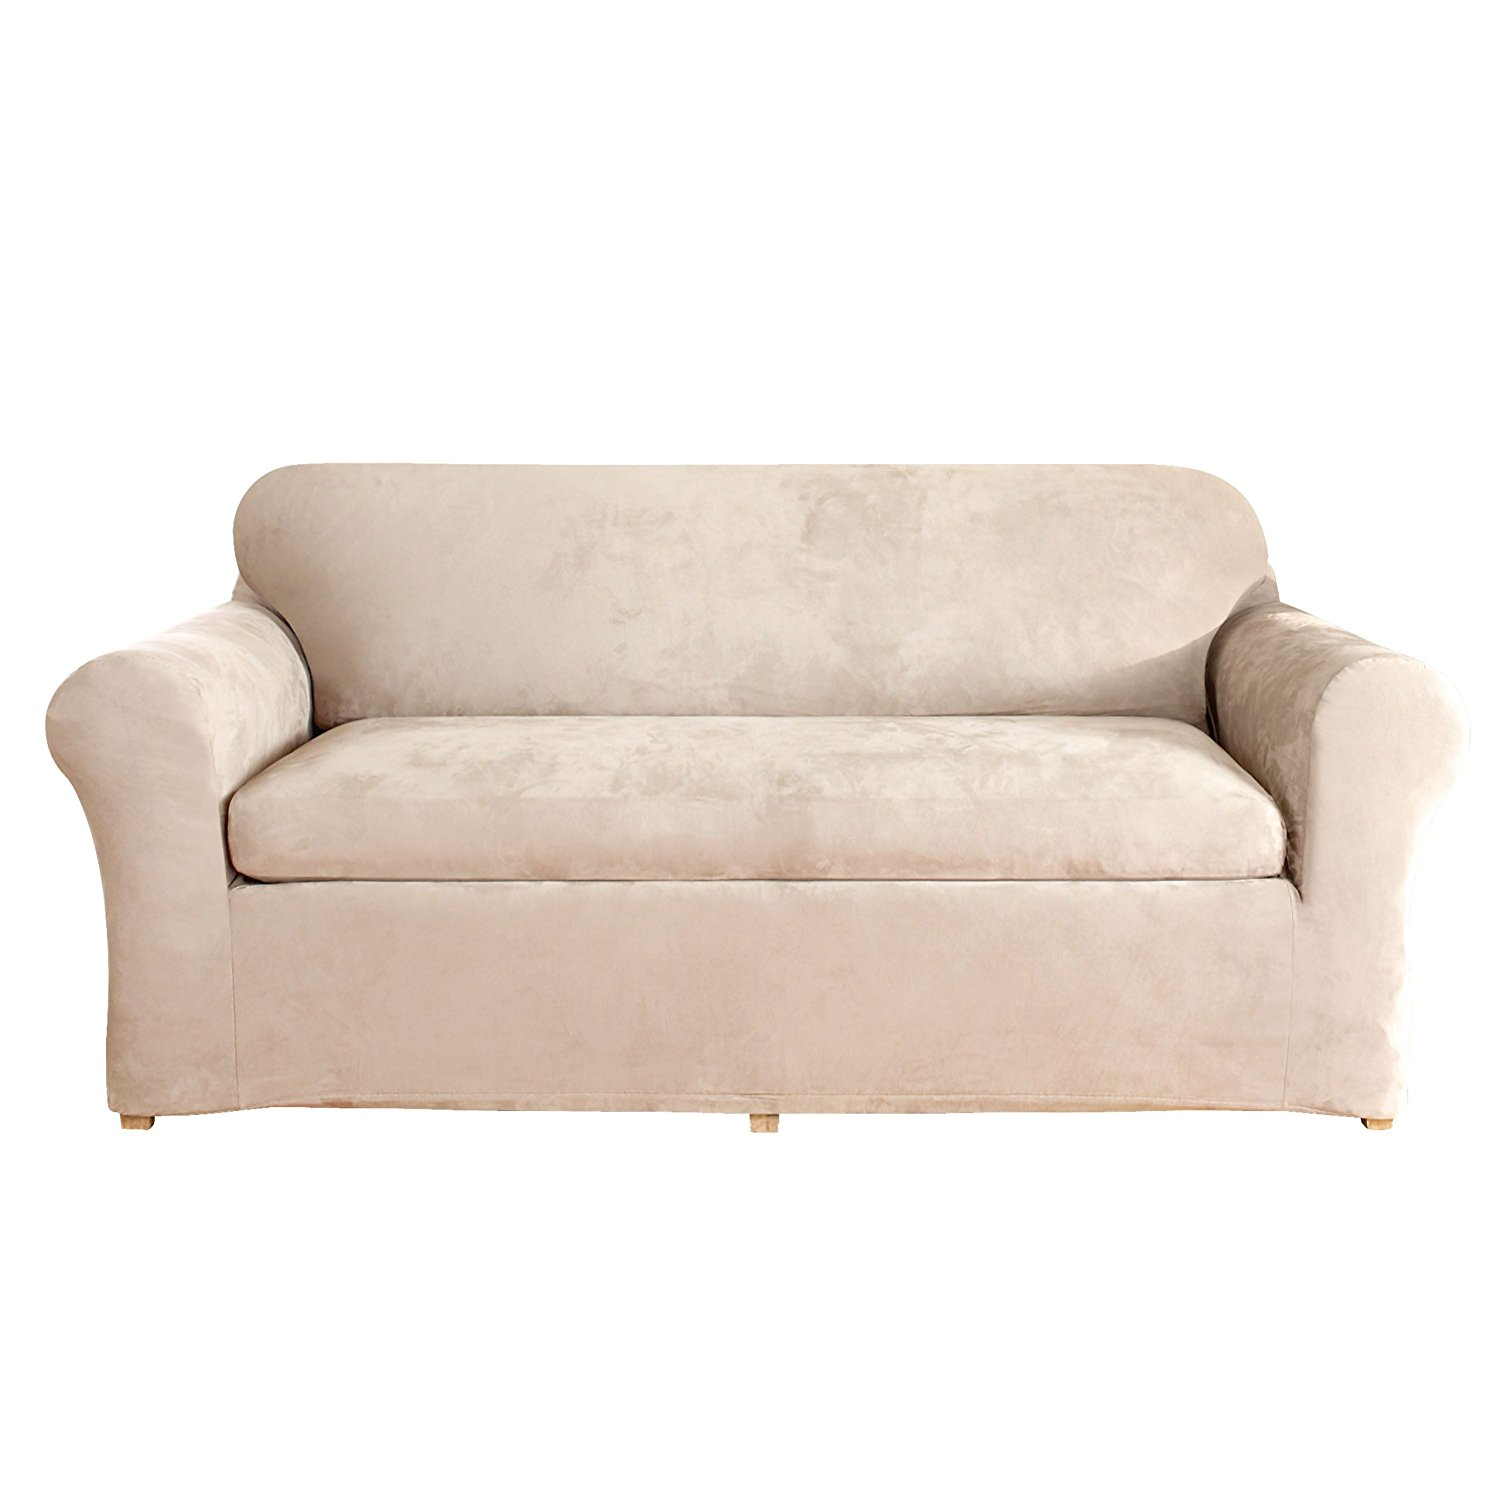 Slipcovers for Sofas with Cushions Separate | Sectional Sofa Slipcovers | Sofa Seat Cushion Covers